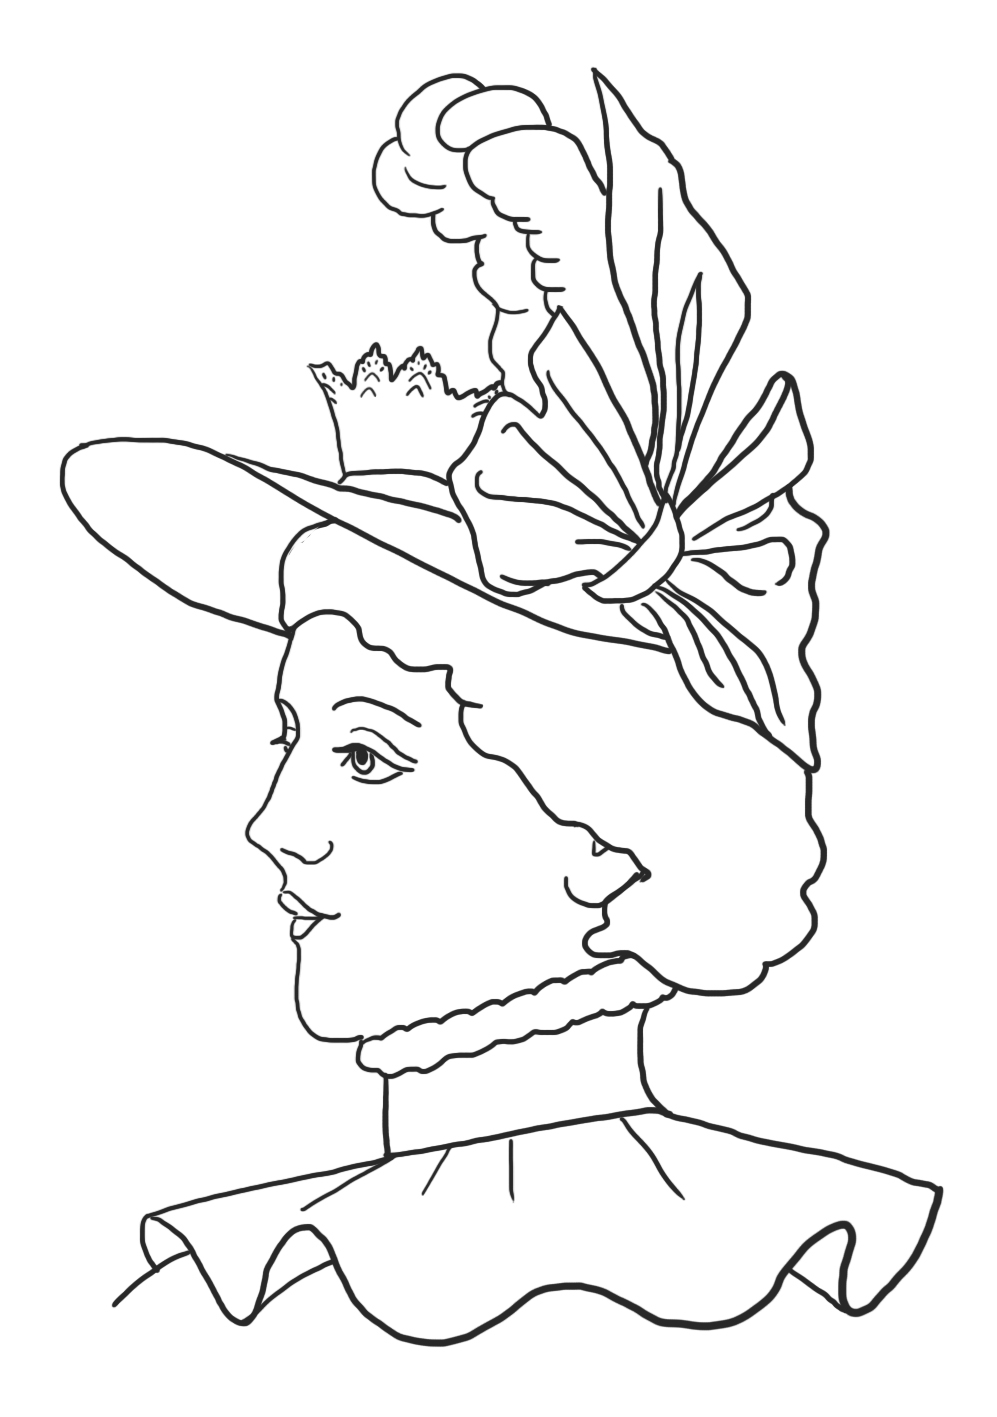 coloring page tiara hat victorian era - Victorian Coloring Pages